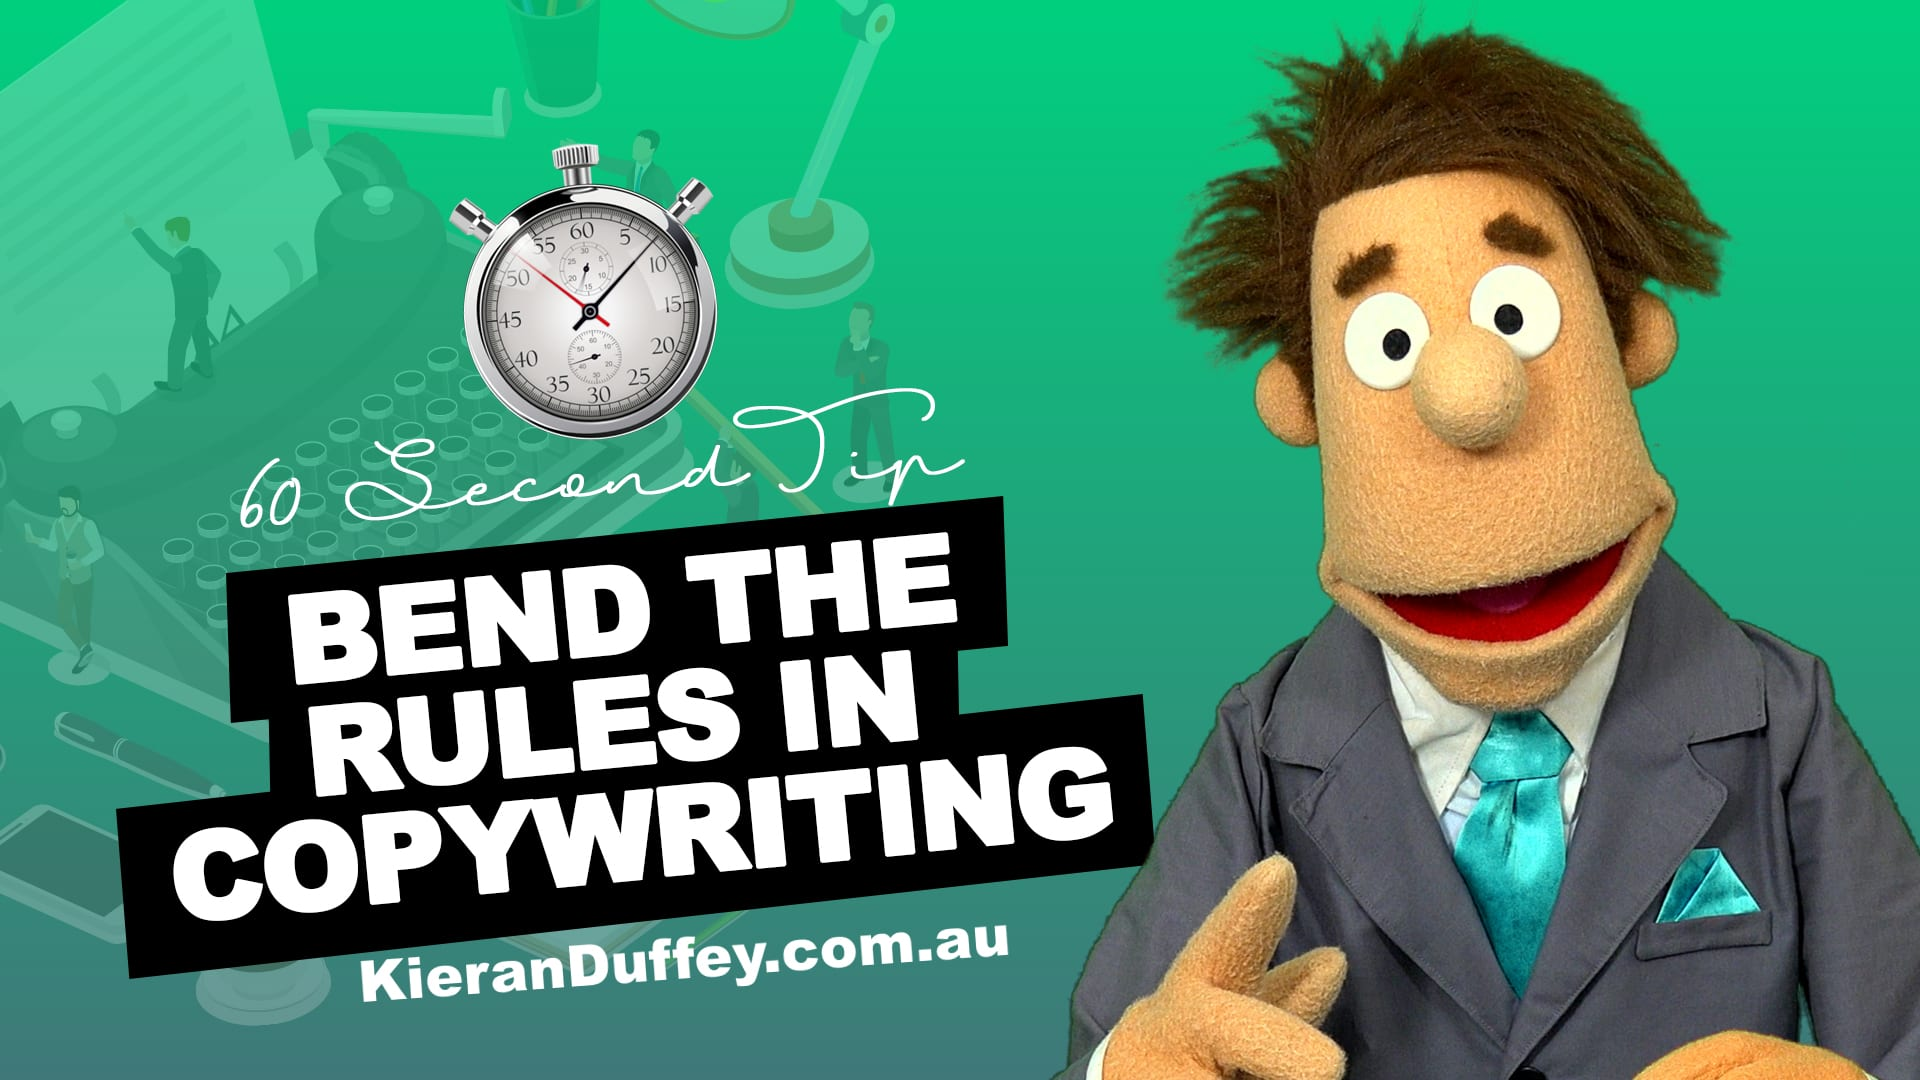 Video explaining why it's ok to bend the rules in copywriting to achieve results